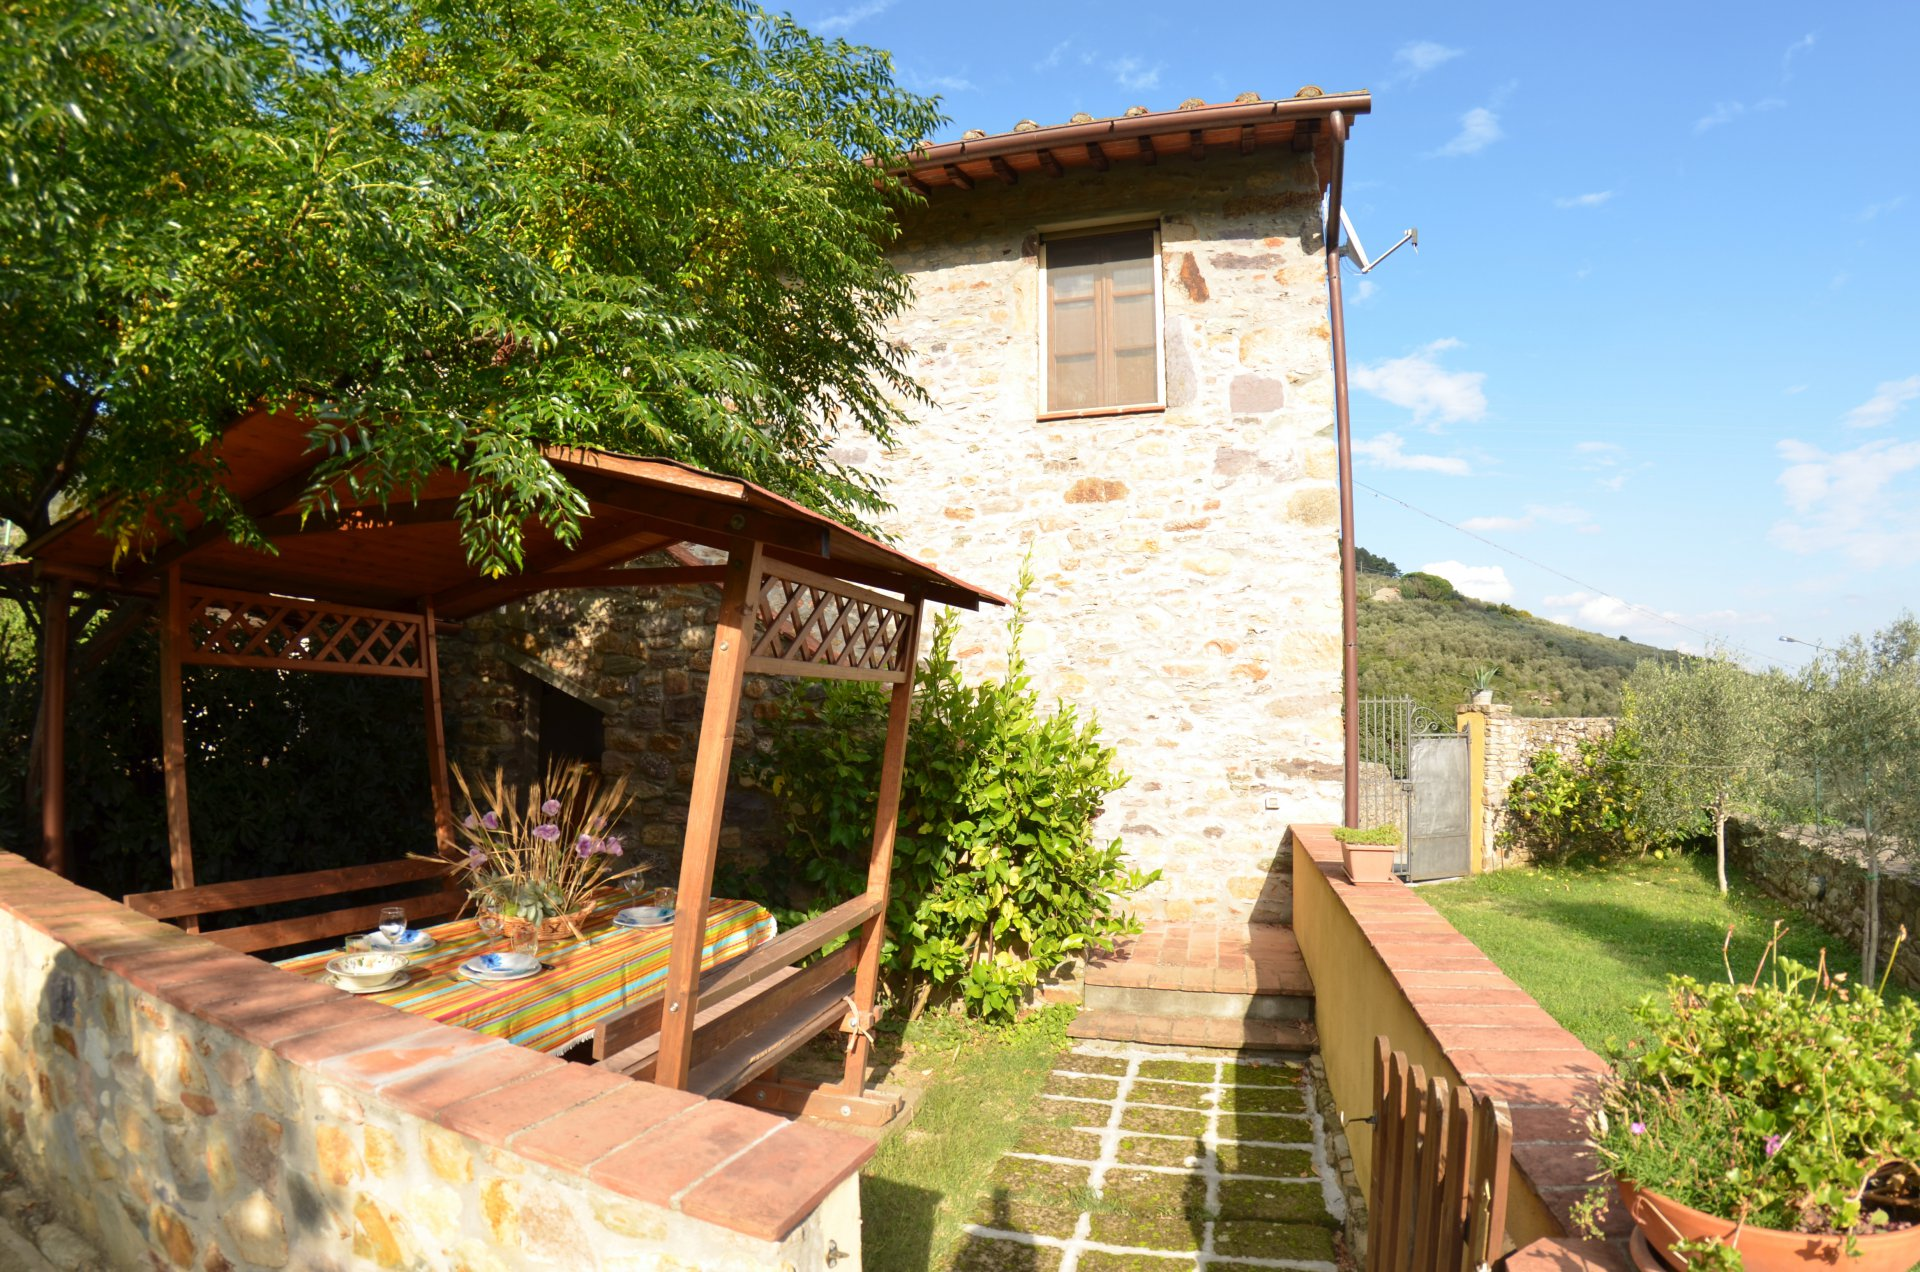 Seasonal rental Apartment villa - Buti - Italy